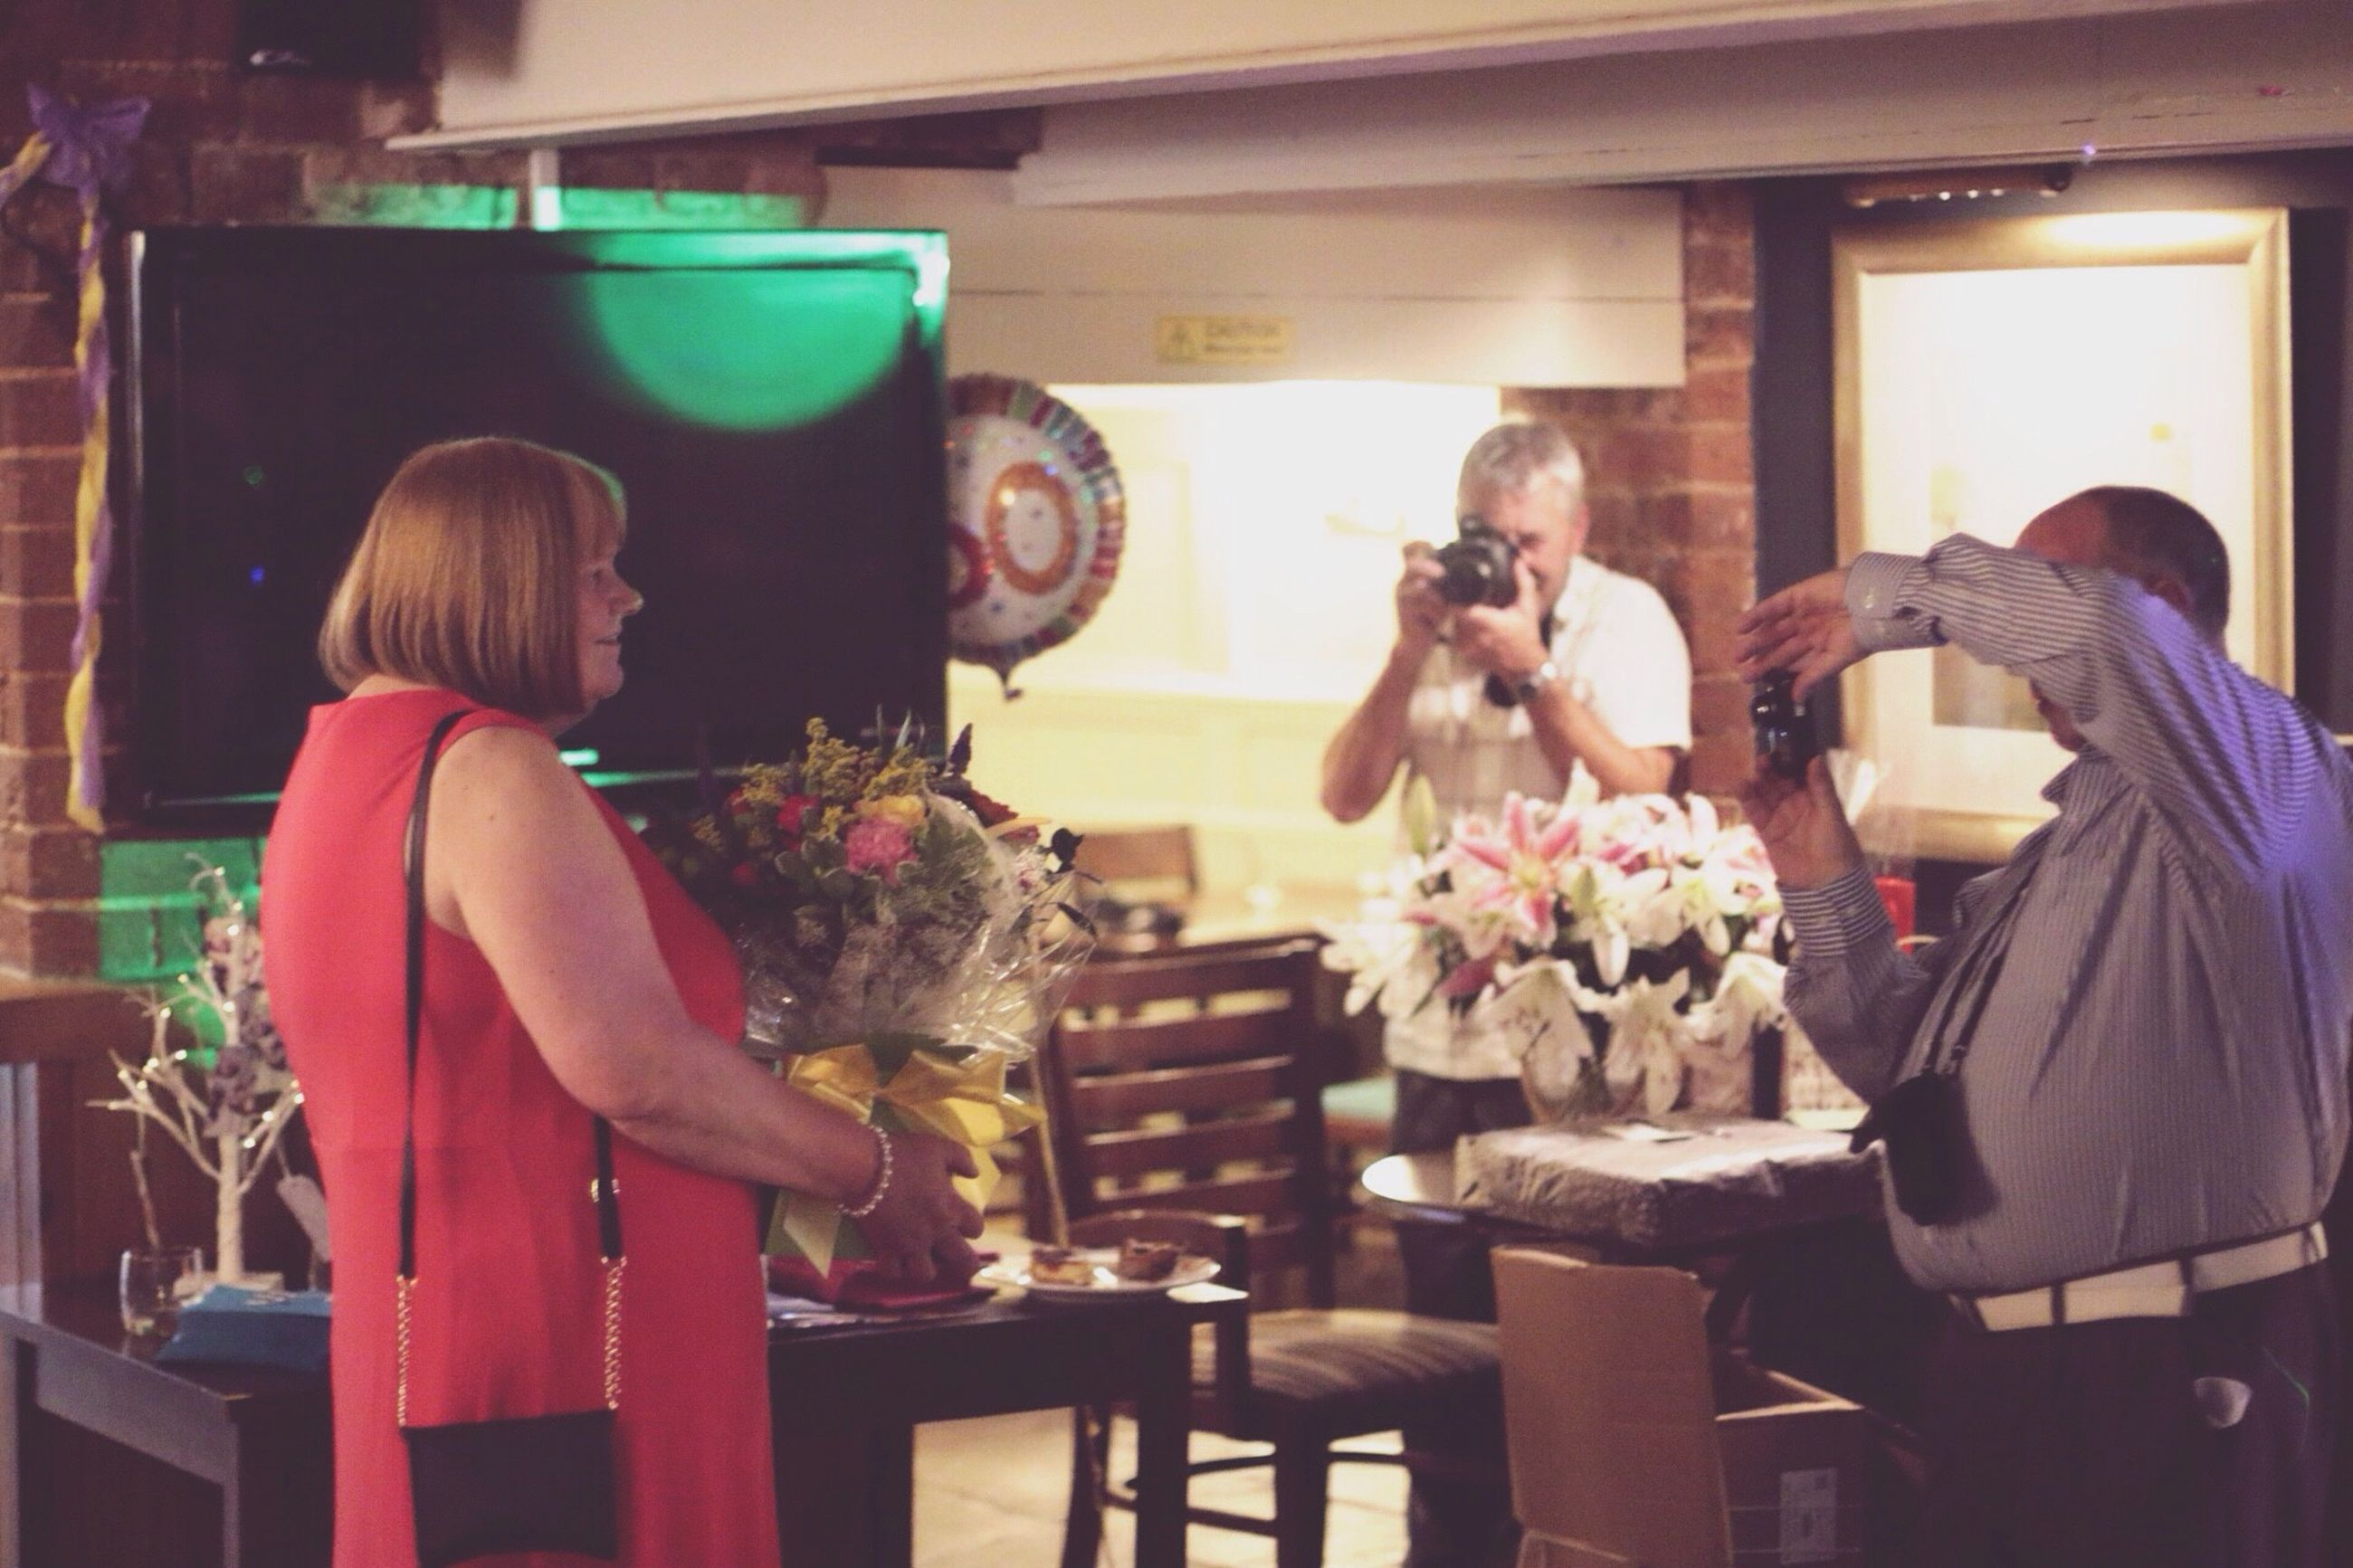 indoors, sitting, person, freshness, men, waist up, table, standing, bouquet, casual clothing, group of people, preparation, flower, restaurant, holding, bunch of flowers, looking, buying